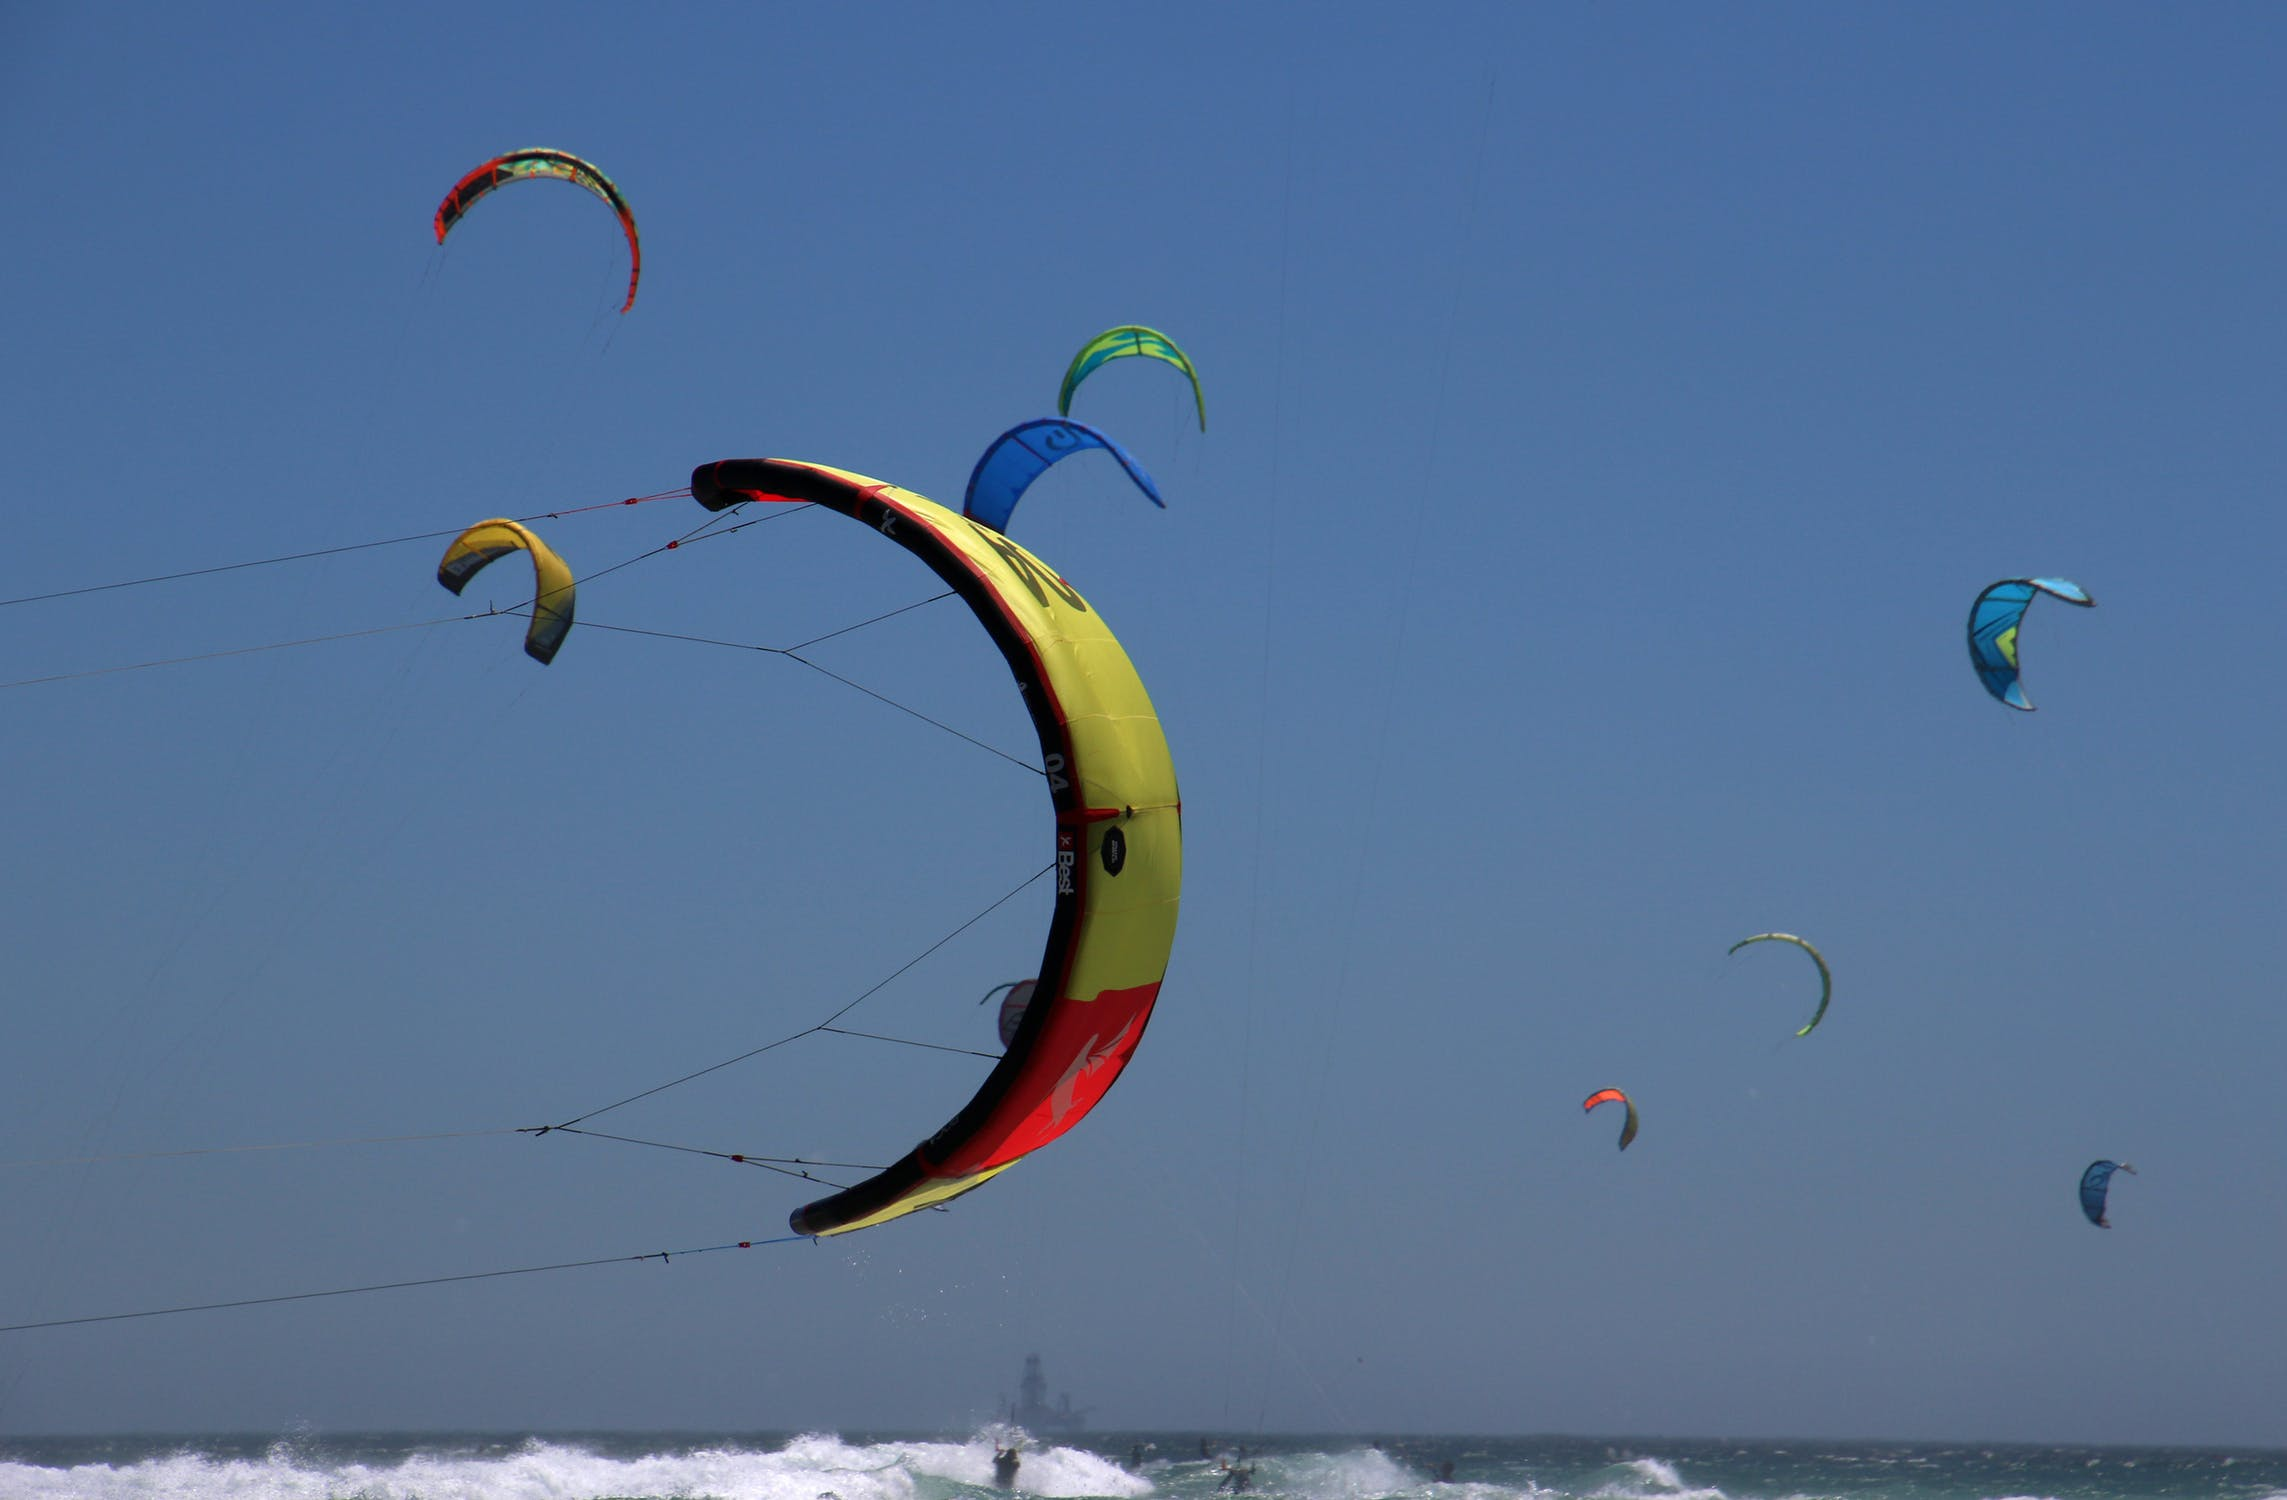 Paragliders flying in the sea photo